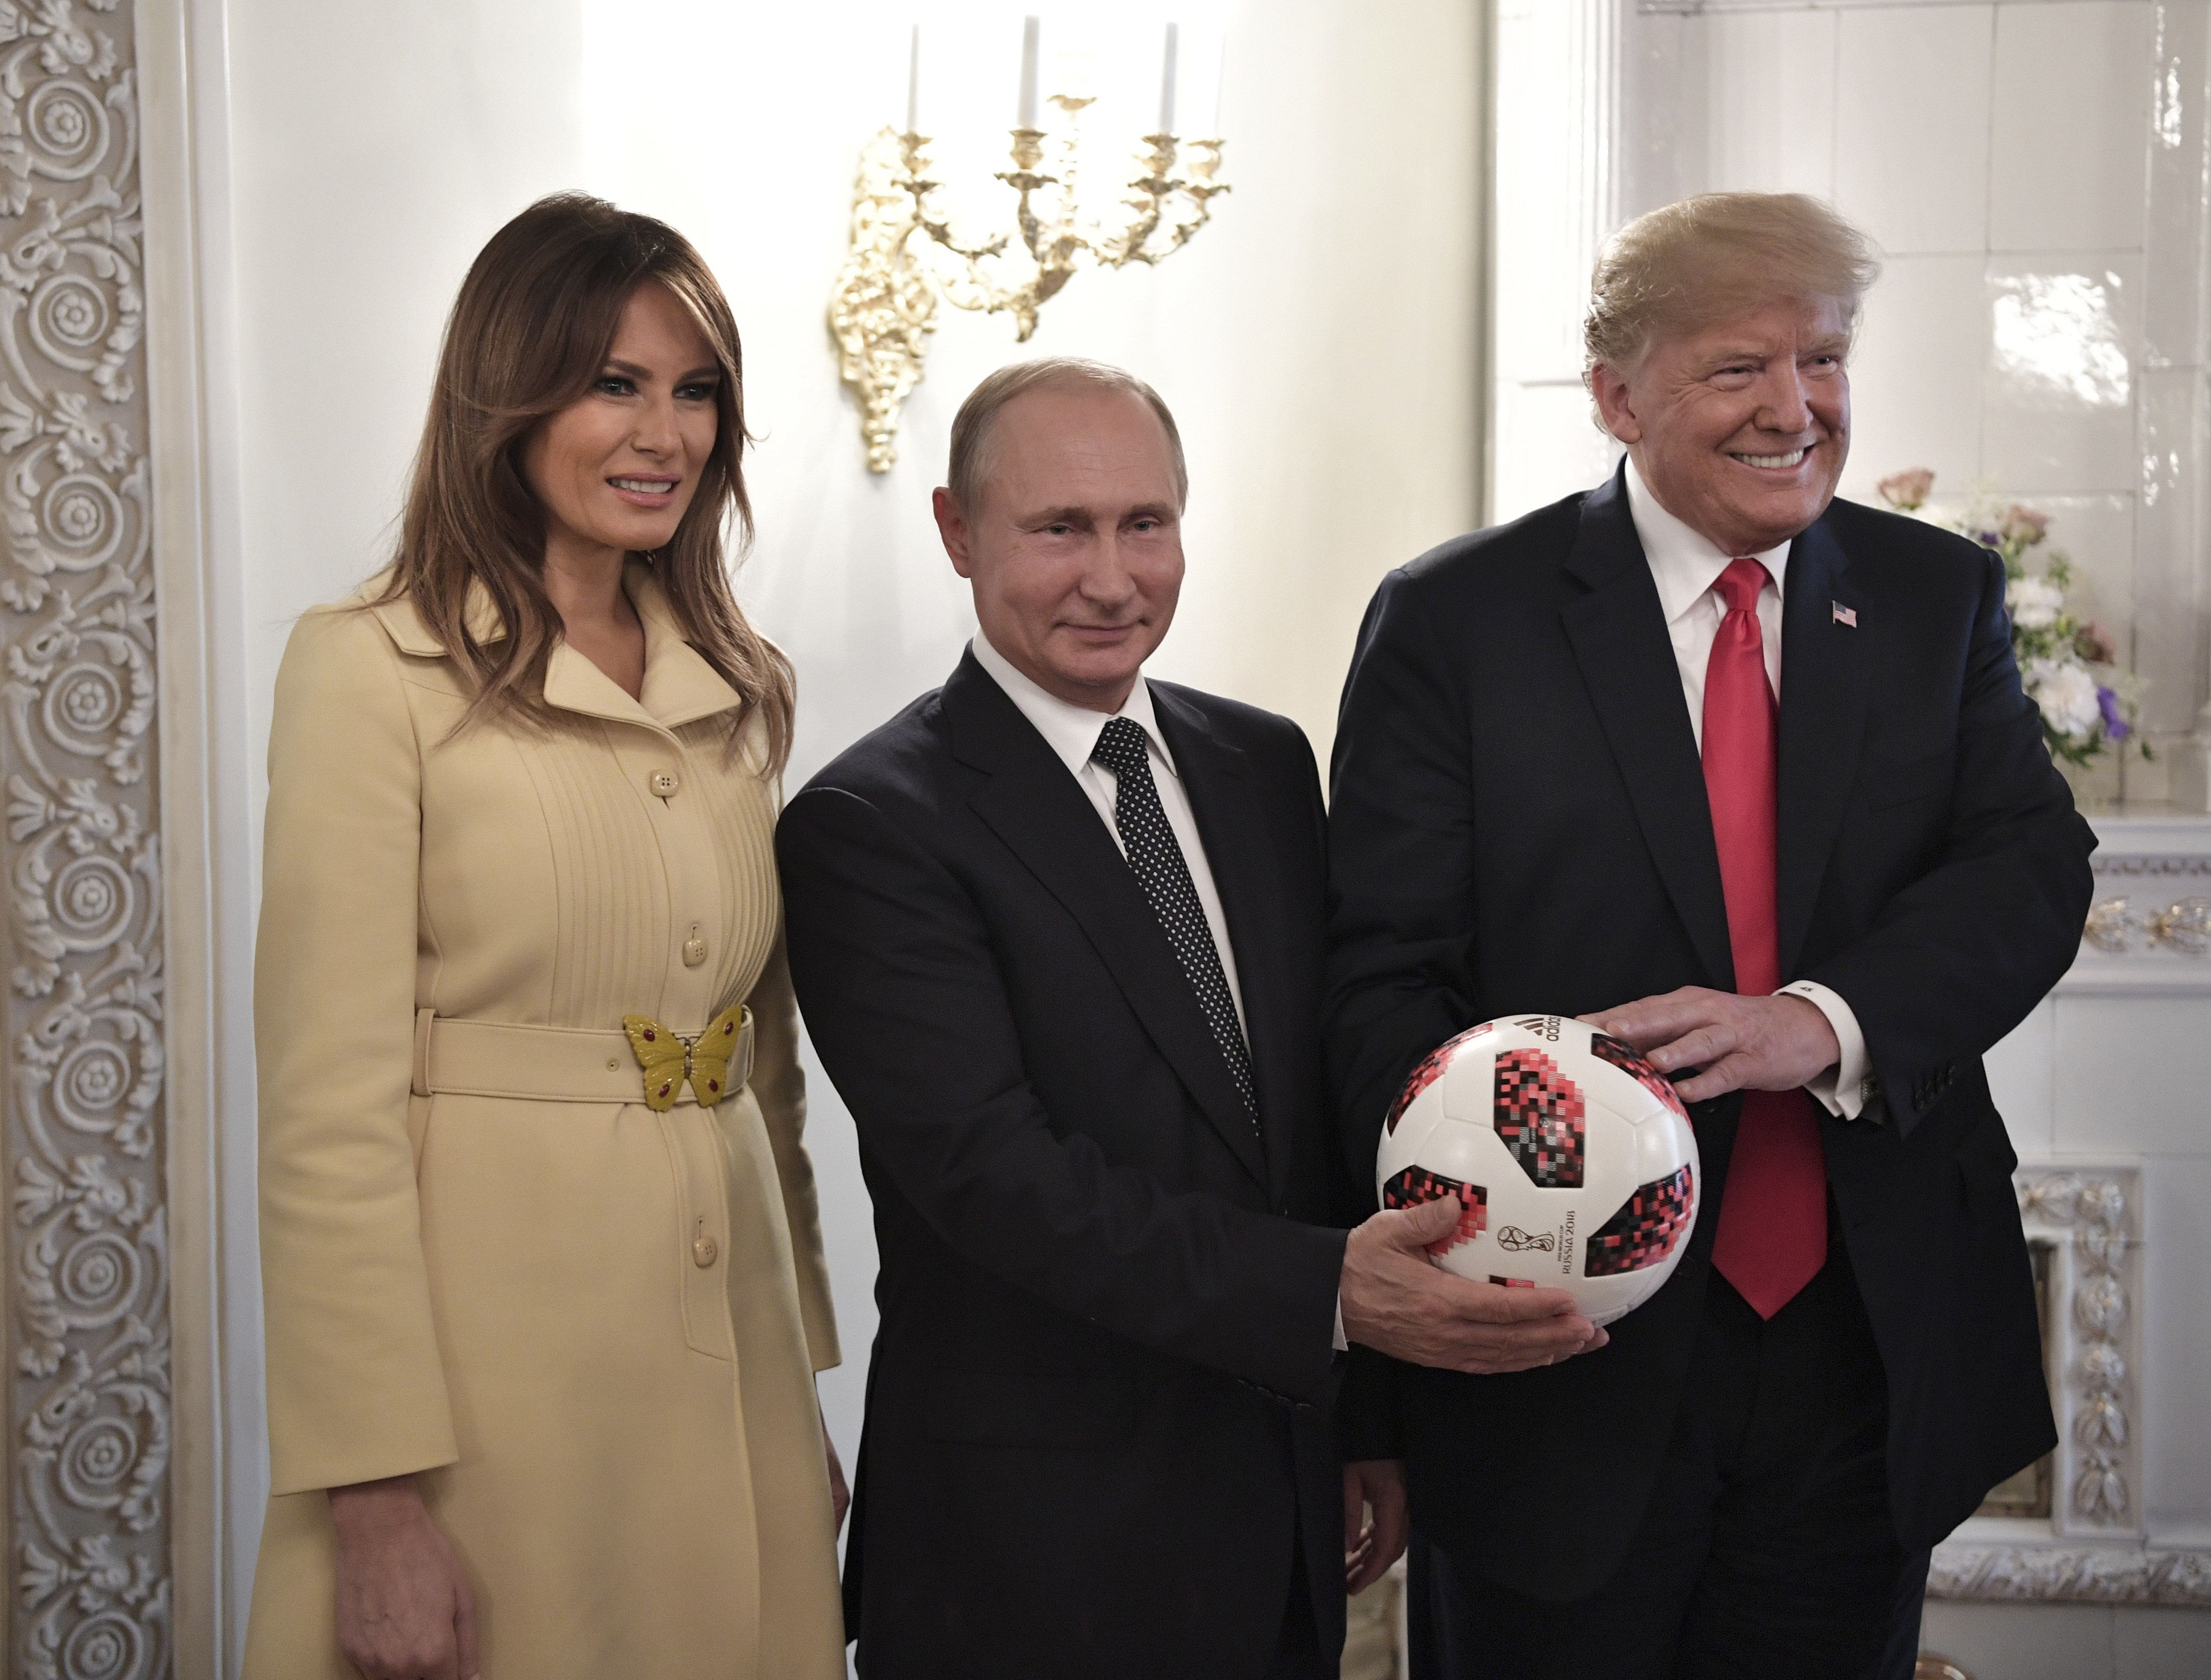 Here's What Americans Made Of Trump's Meeting With Putin, According To The Polls